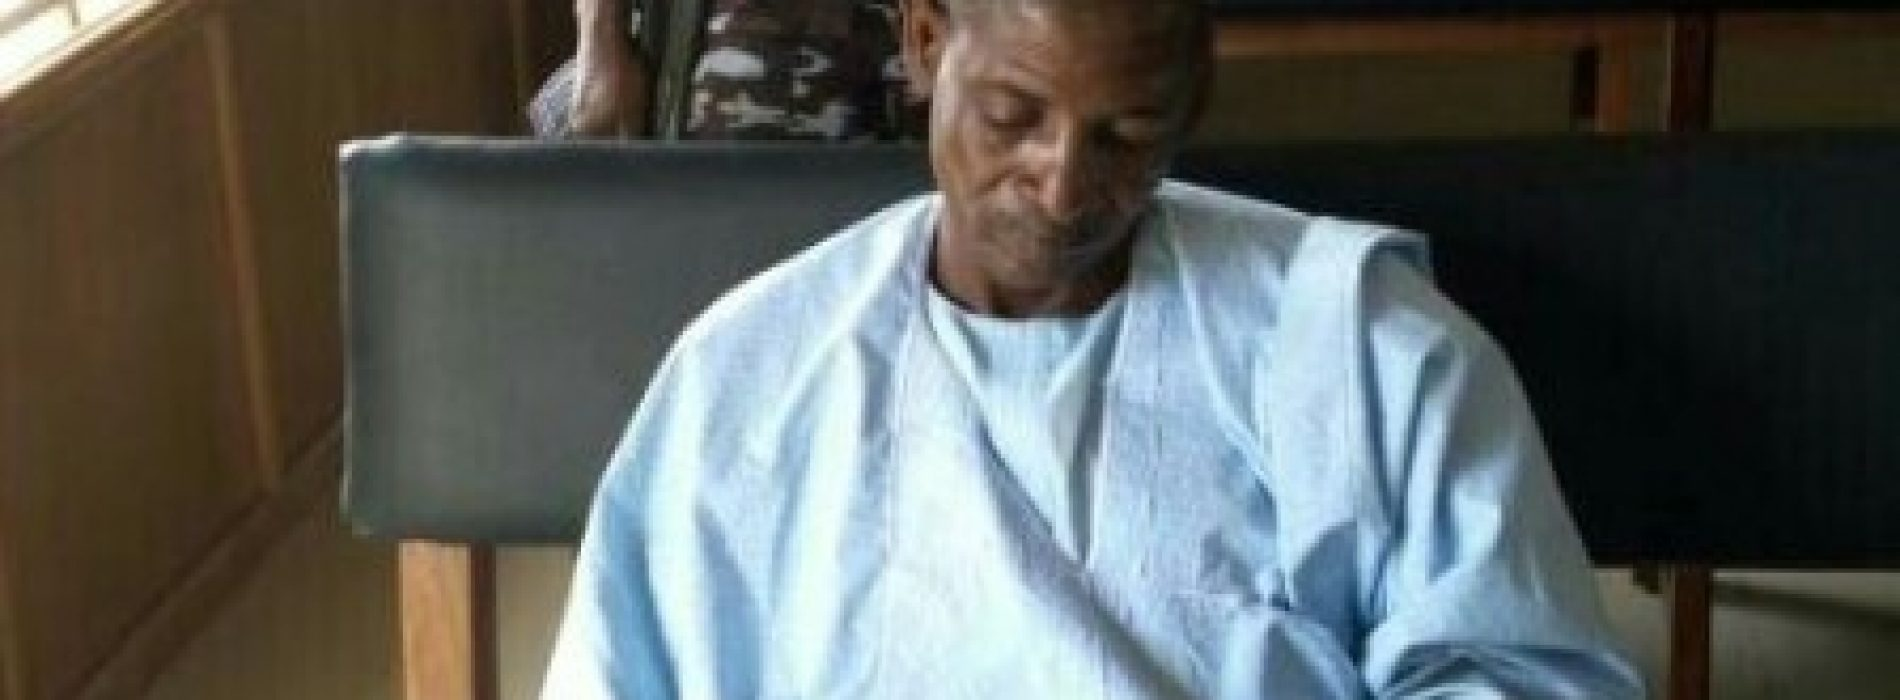 ICPC arraigns whistle-blower over false information on ex-VP Sambo